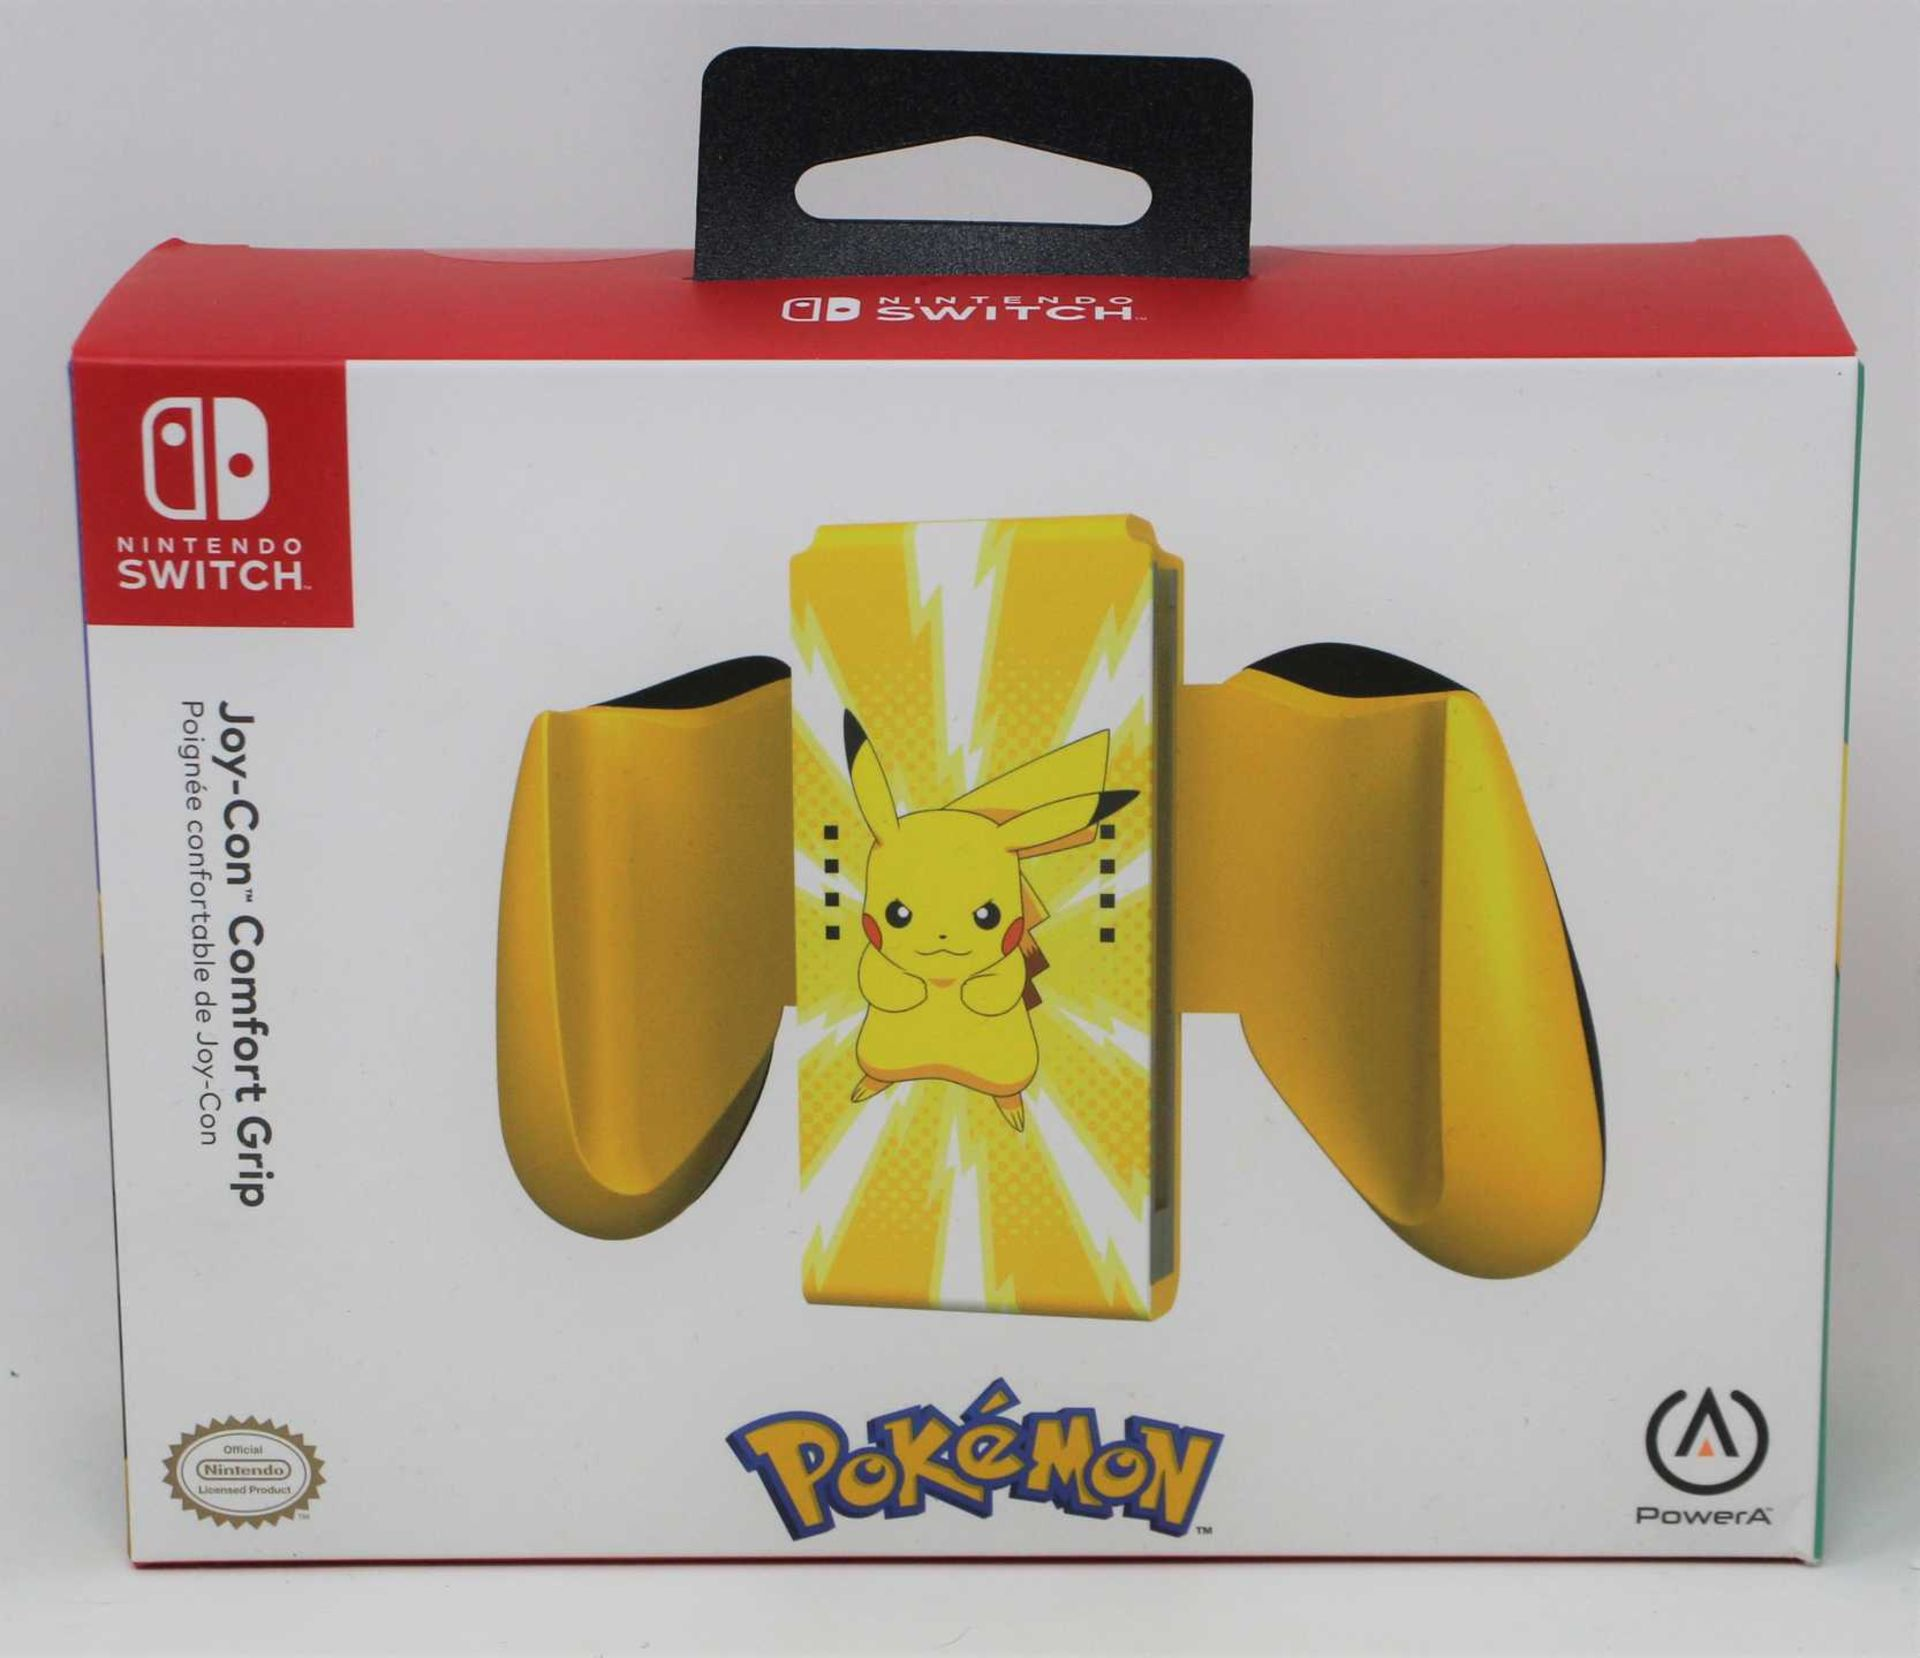 A boxed as new PowerA Pikachu Edition Joy-Con Comfort Grip for Nintendo Switch (Box sealed).